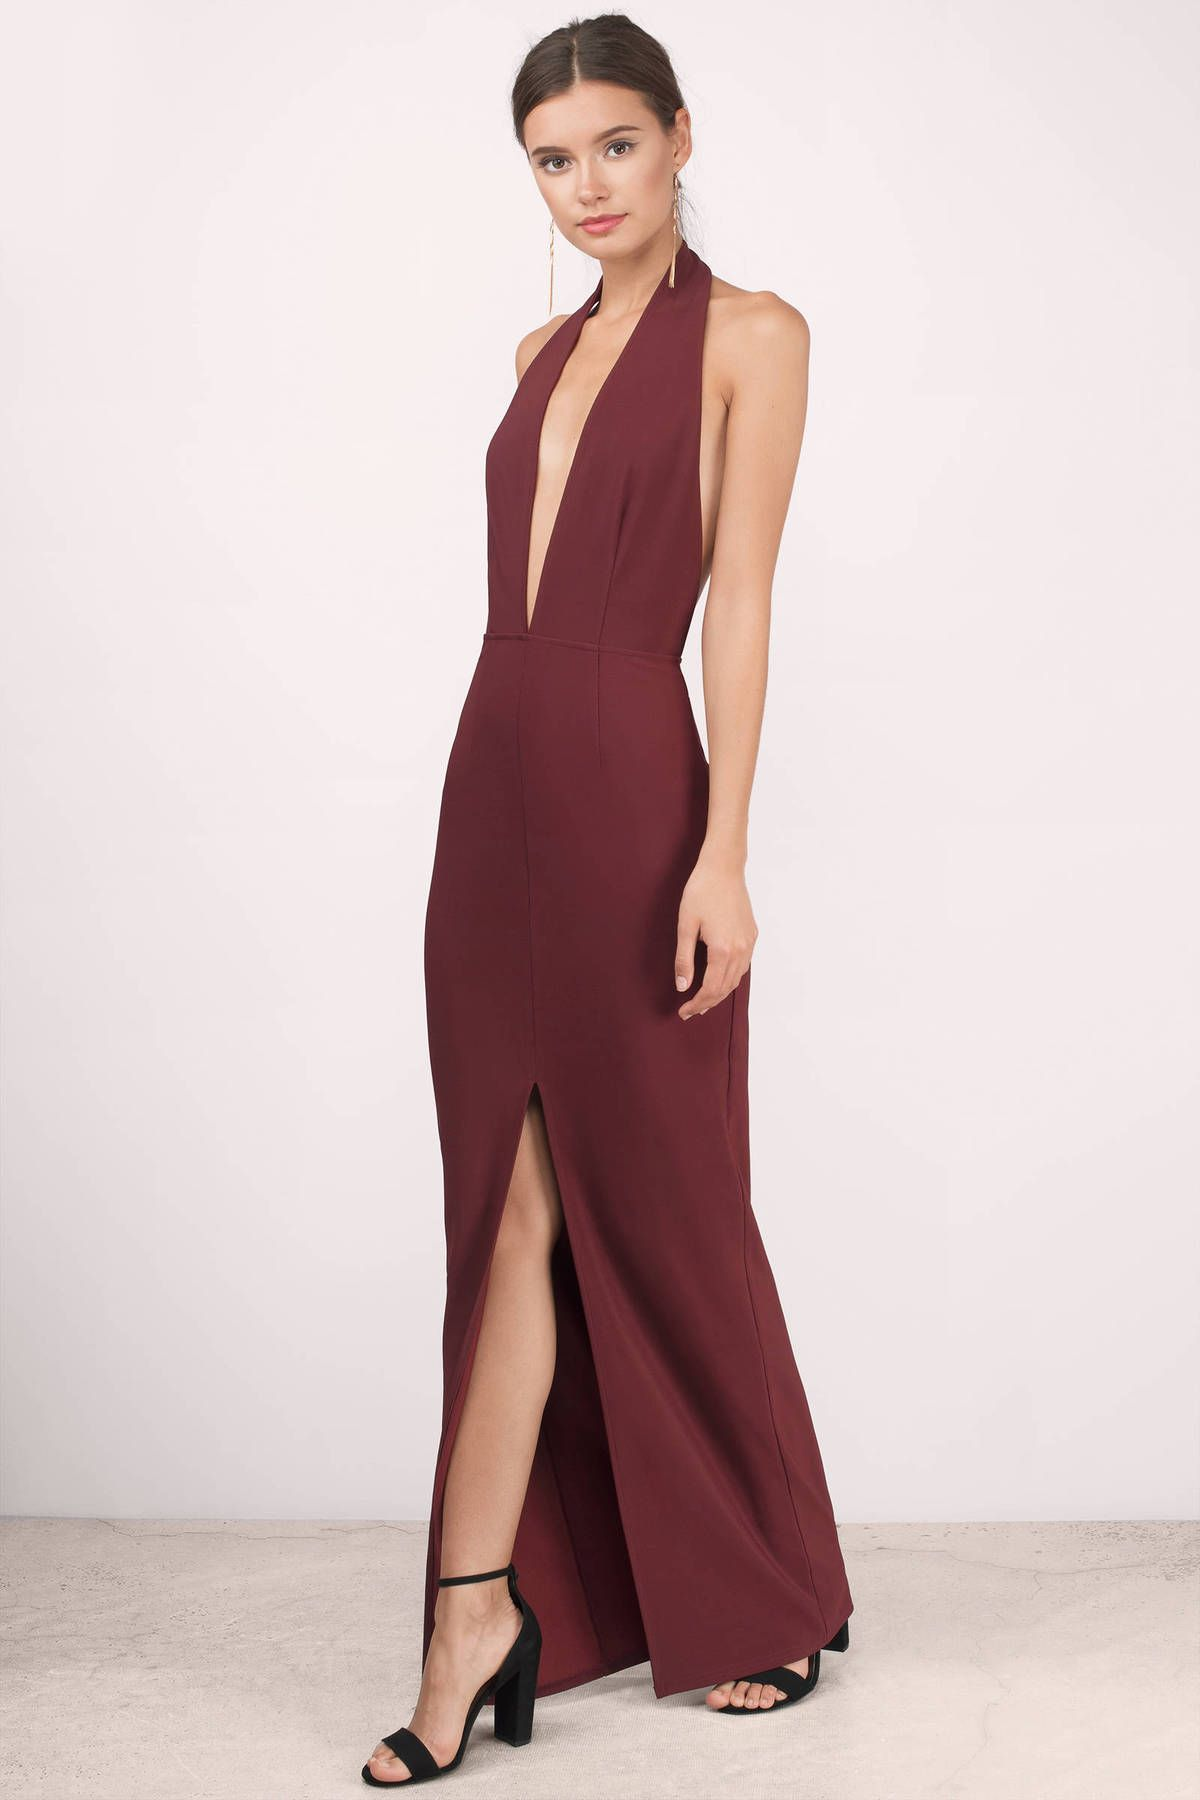 dda5e81a2a Turn heads with the Gala Deep Neck Maxi Dress. Featuring a halter plunging  neckline and backless maxi dress. Pair with heels and sta